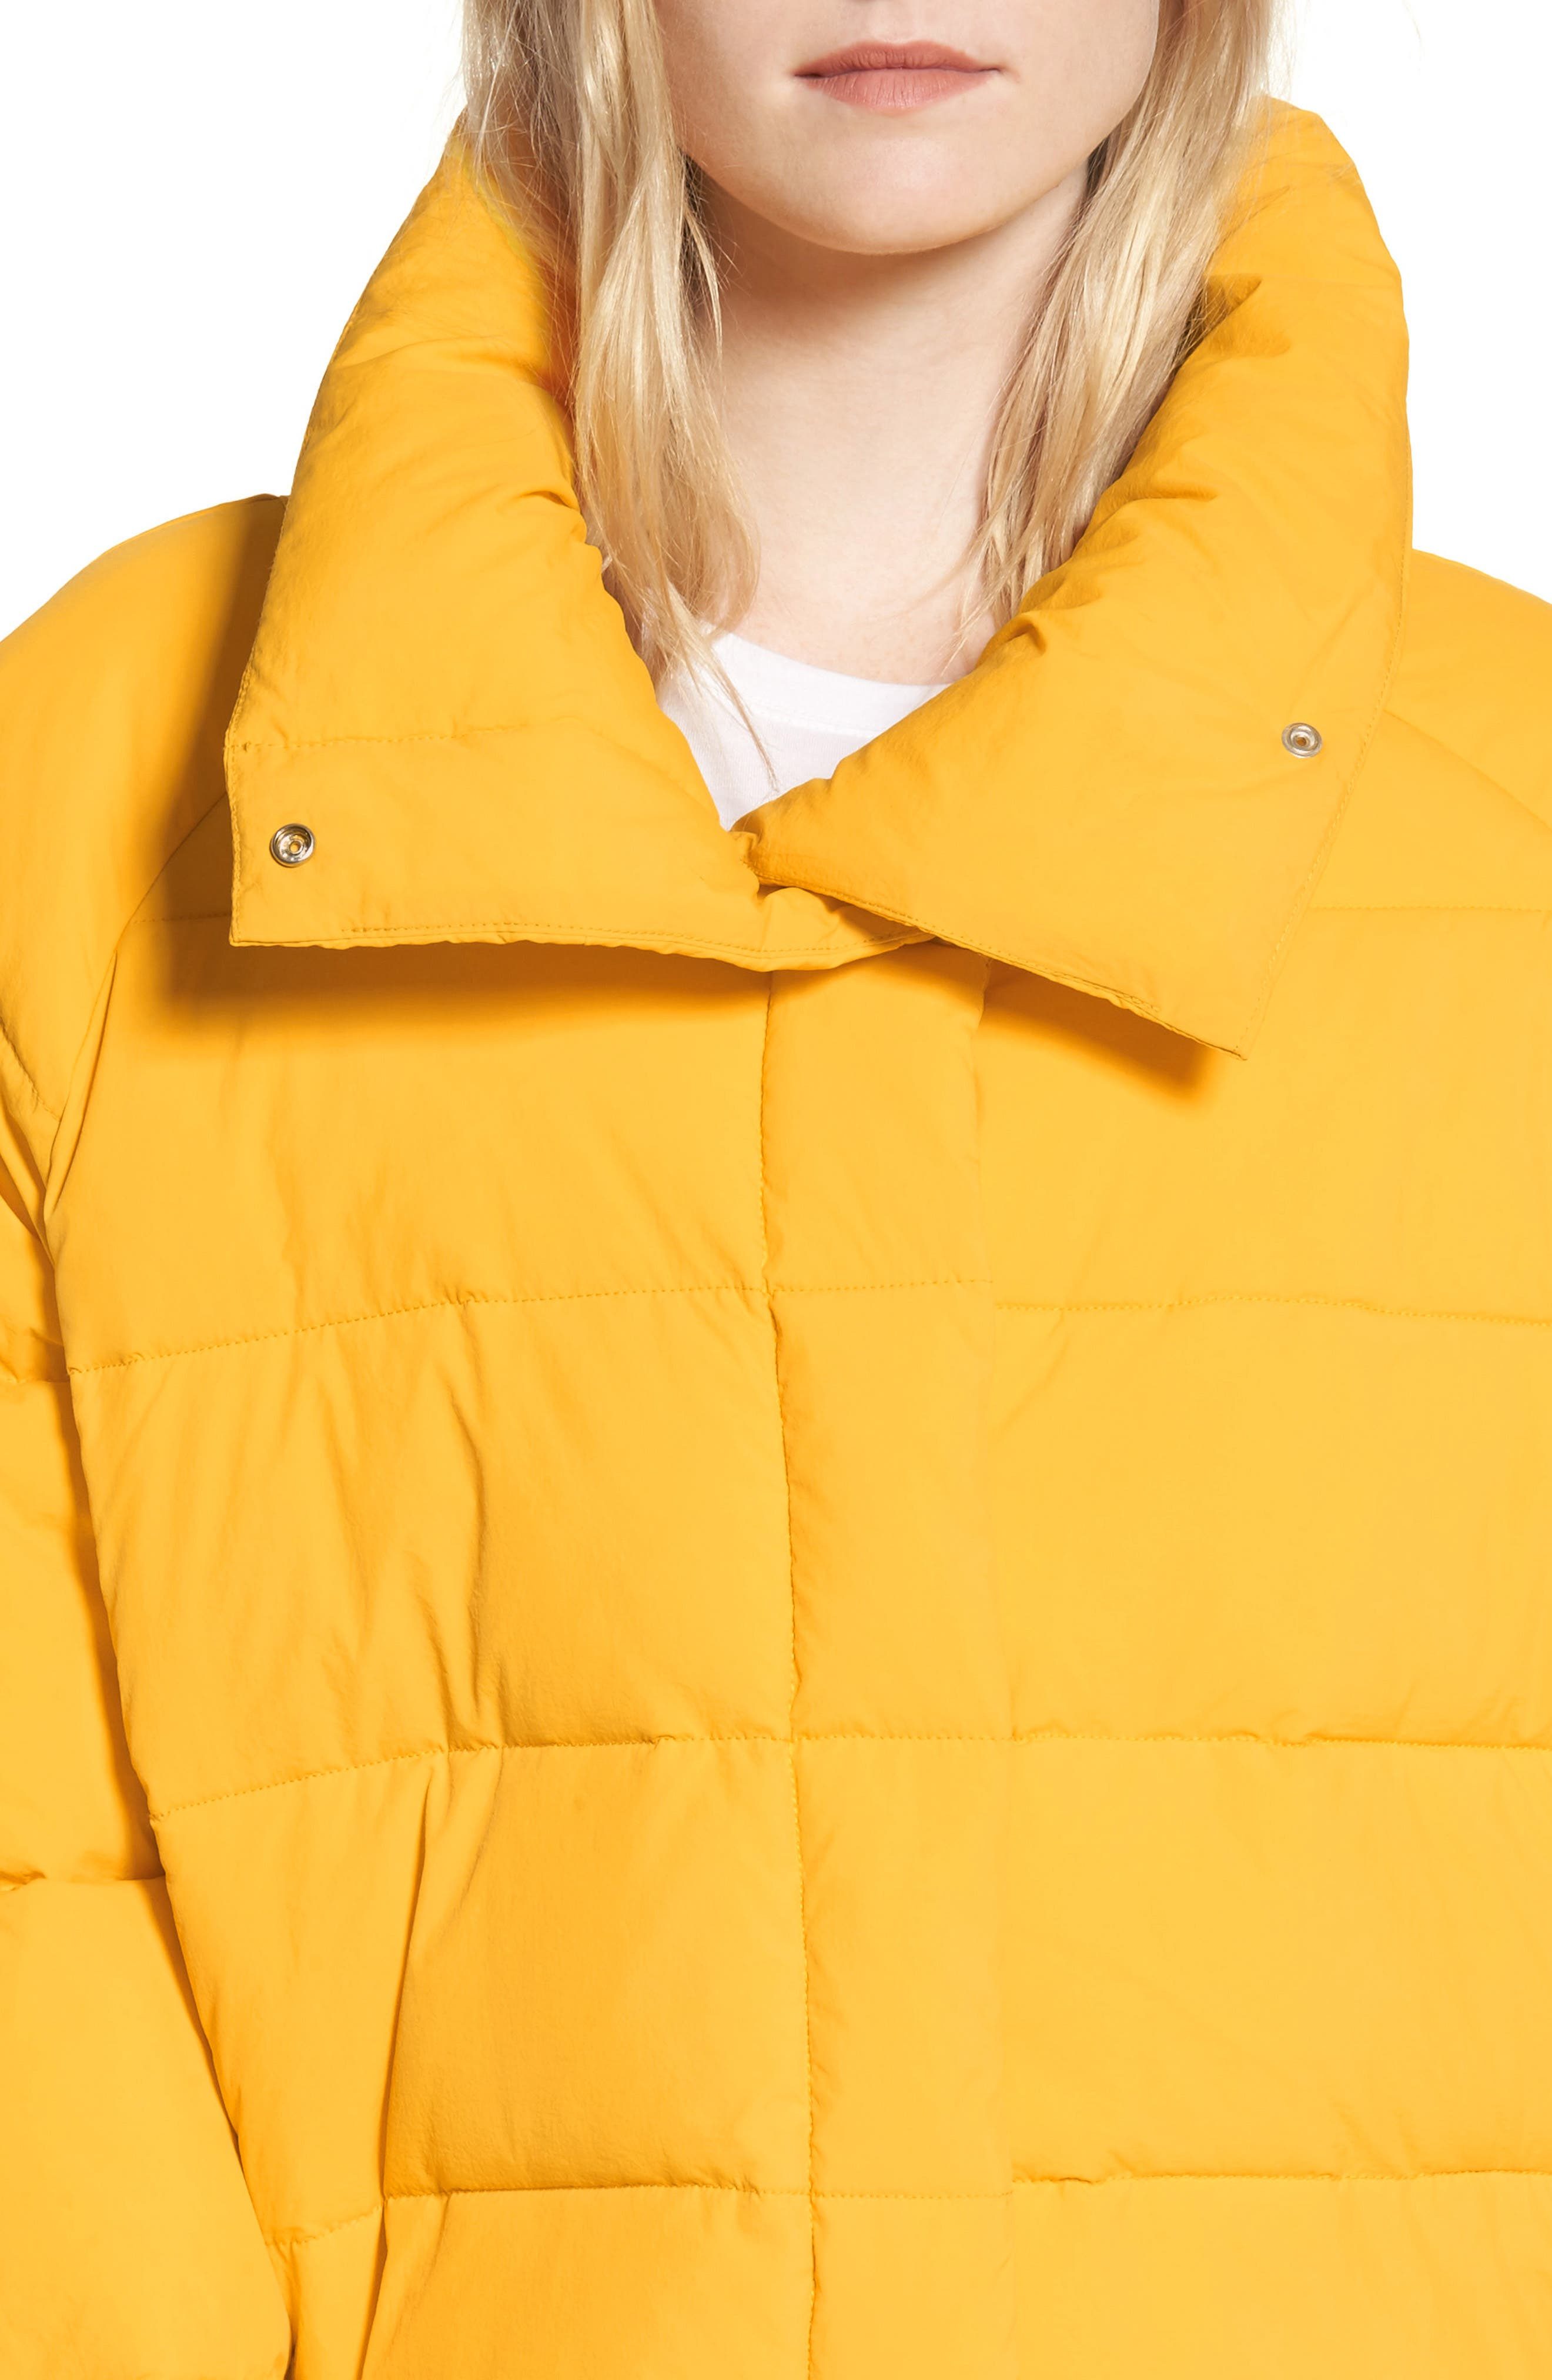 Puffer Coat,                             Alternate thumbnail 4, color,                             700